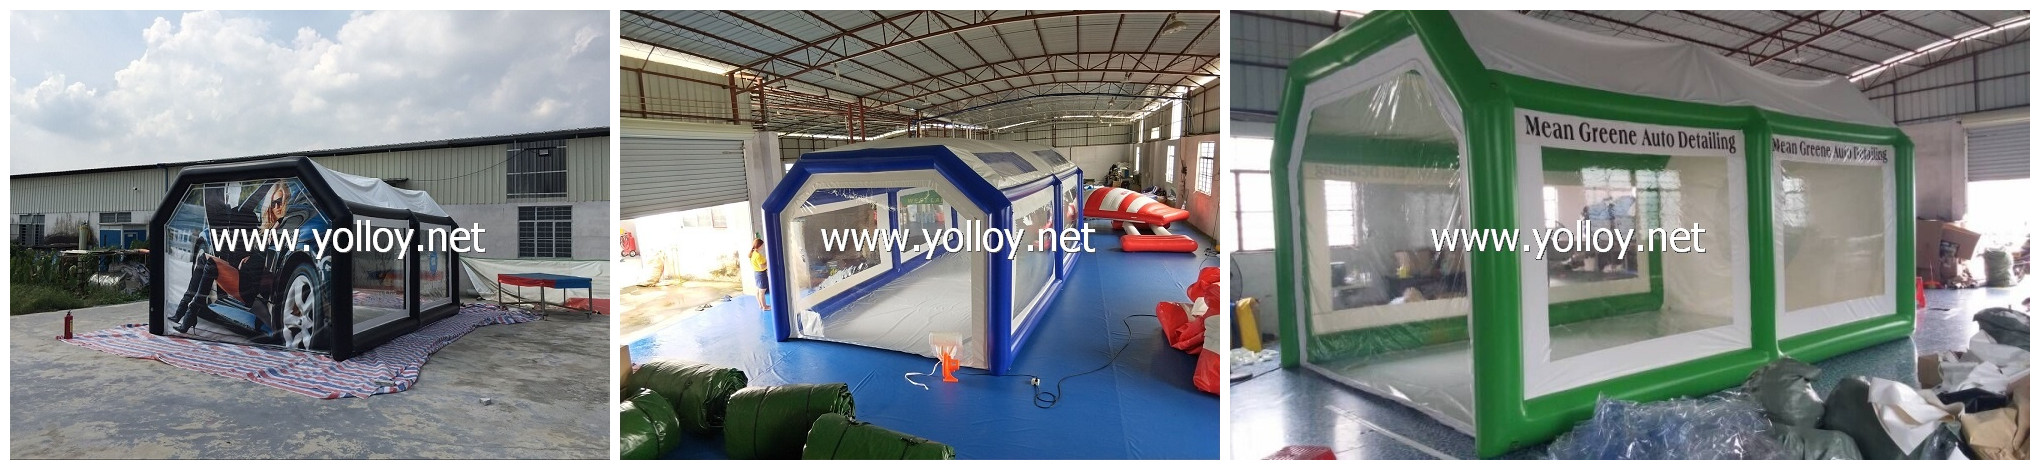 inflatable tent for car care